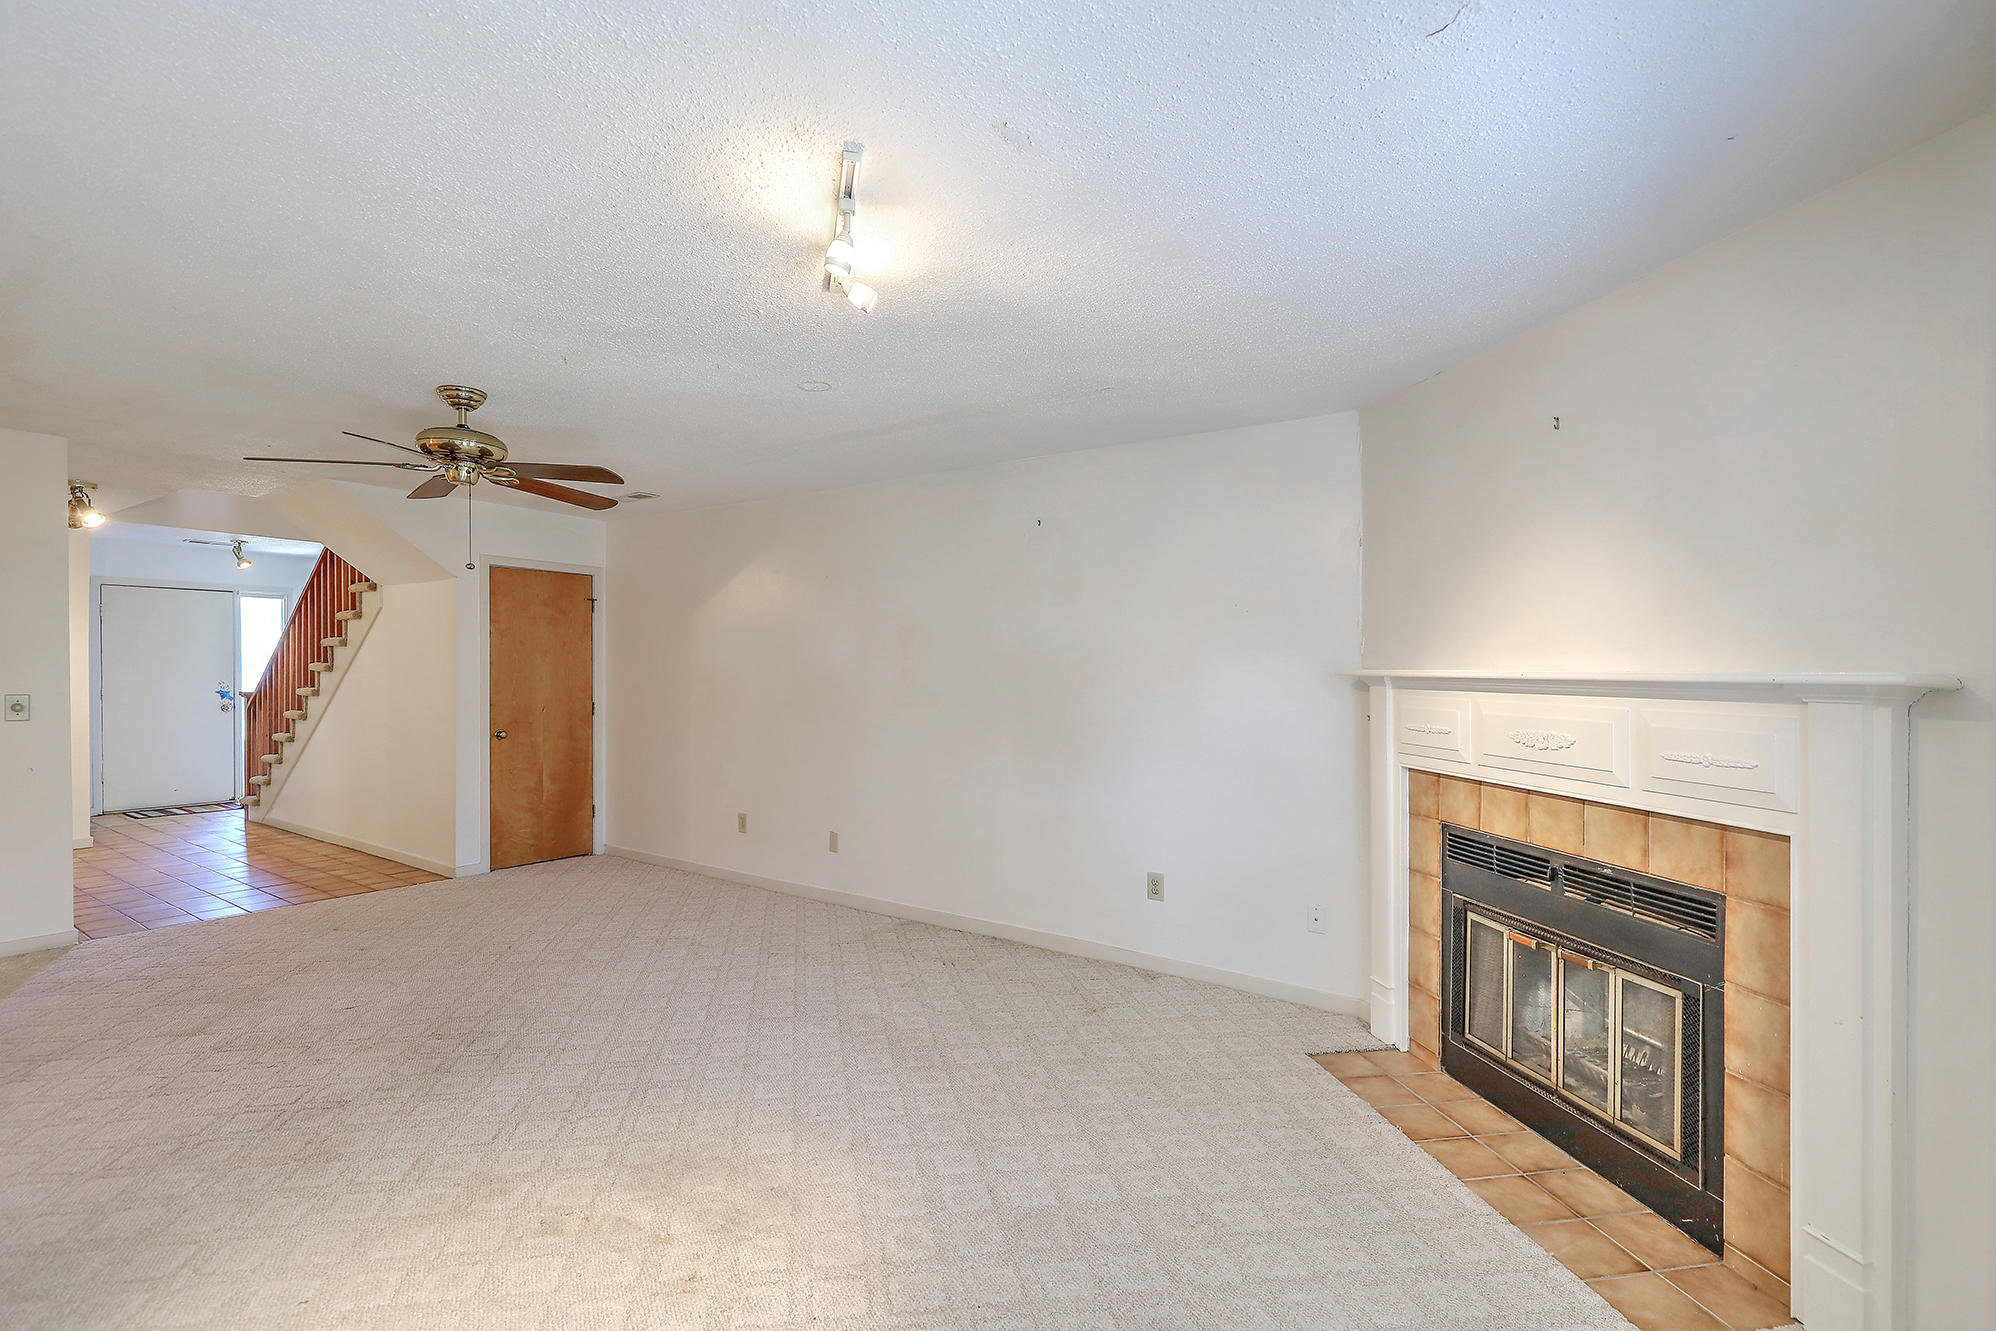 Old Towne Villas Homes For Sale - 2921 Cathedral, Charleston, SC - 27